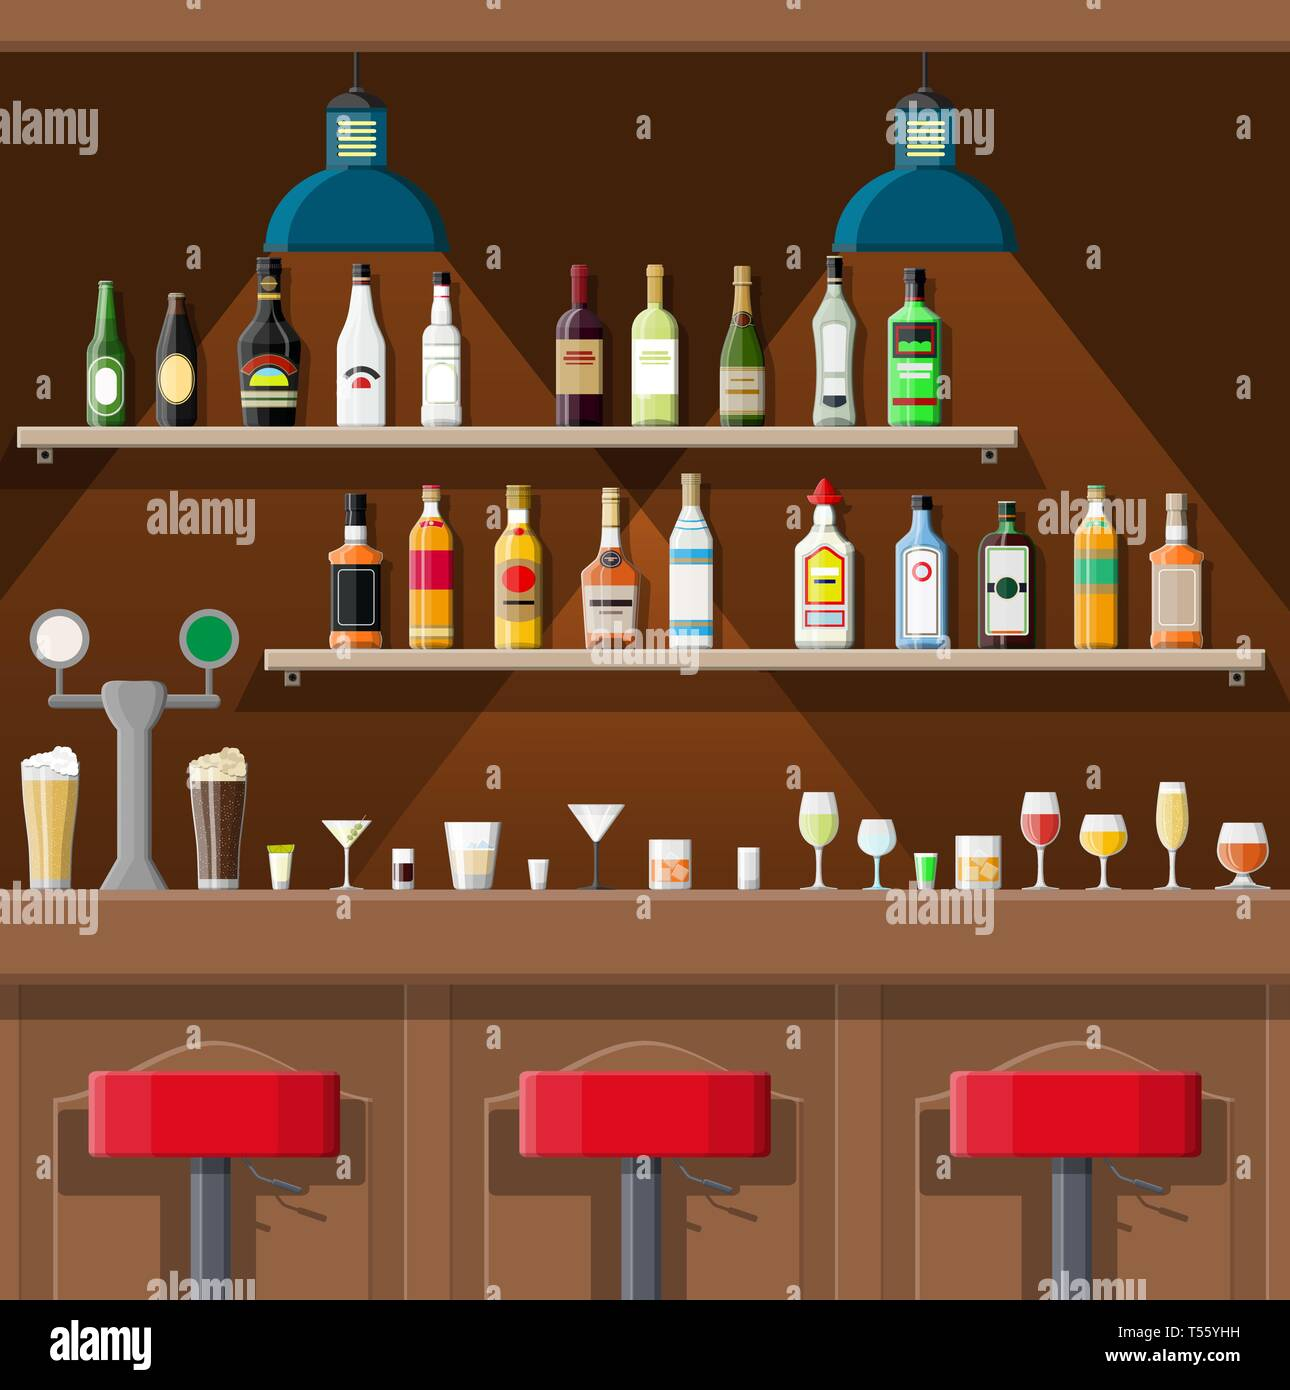 Drinking establishment. Interior of pub, cafe or bar. Bar counter, chairs and shelves with alcohol bottles. Glasses, lamp. Wooden decor. Vector illust Stock Vector